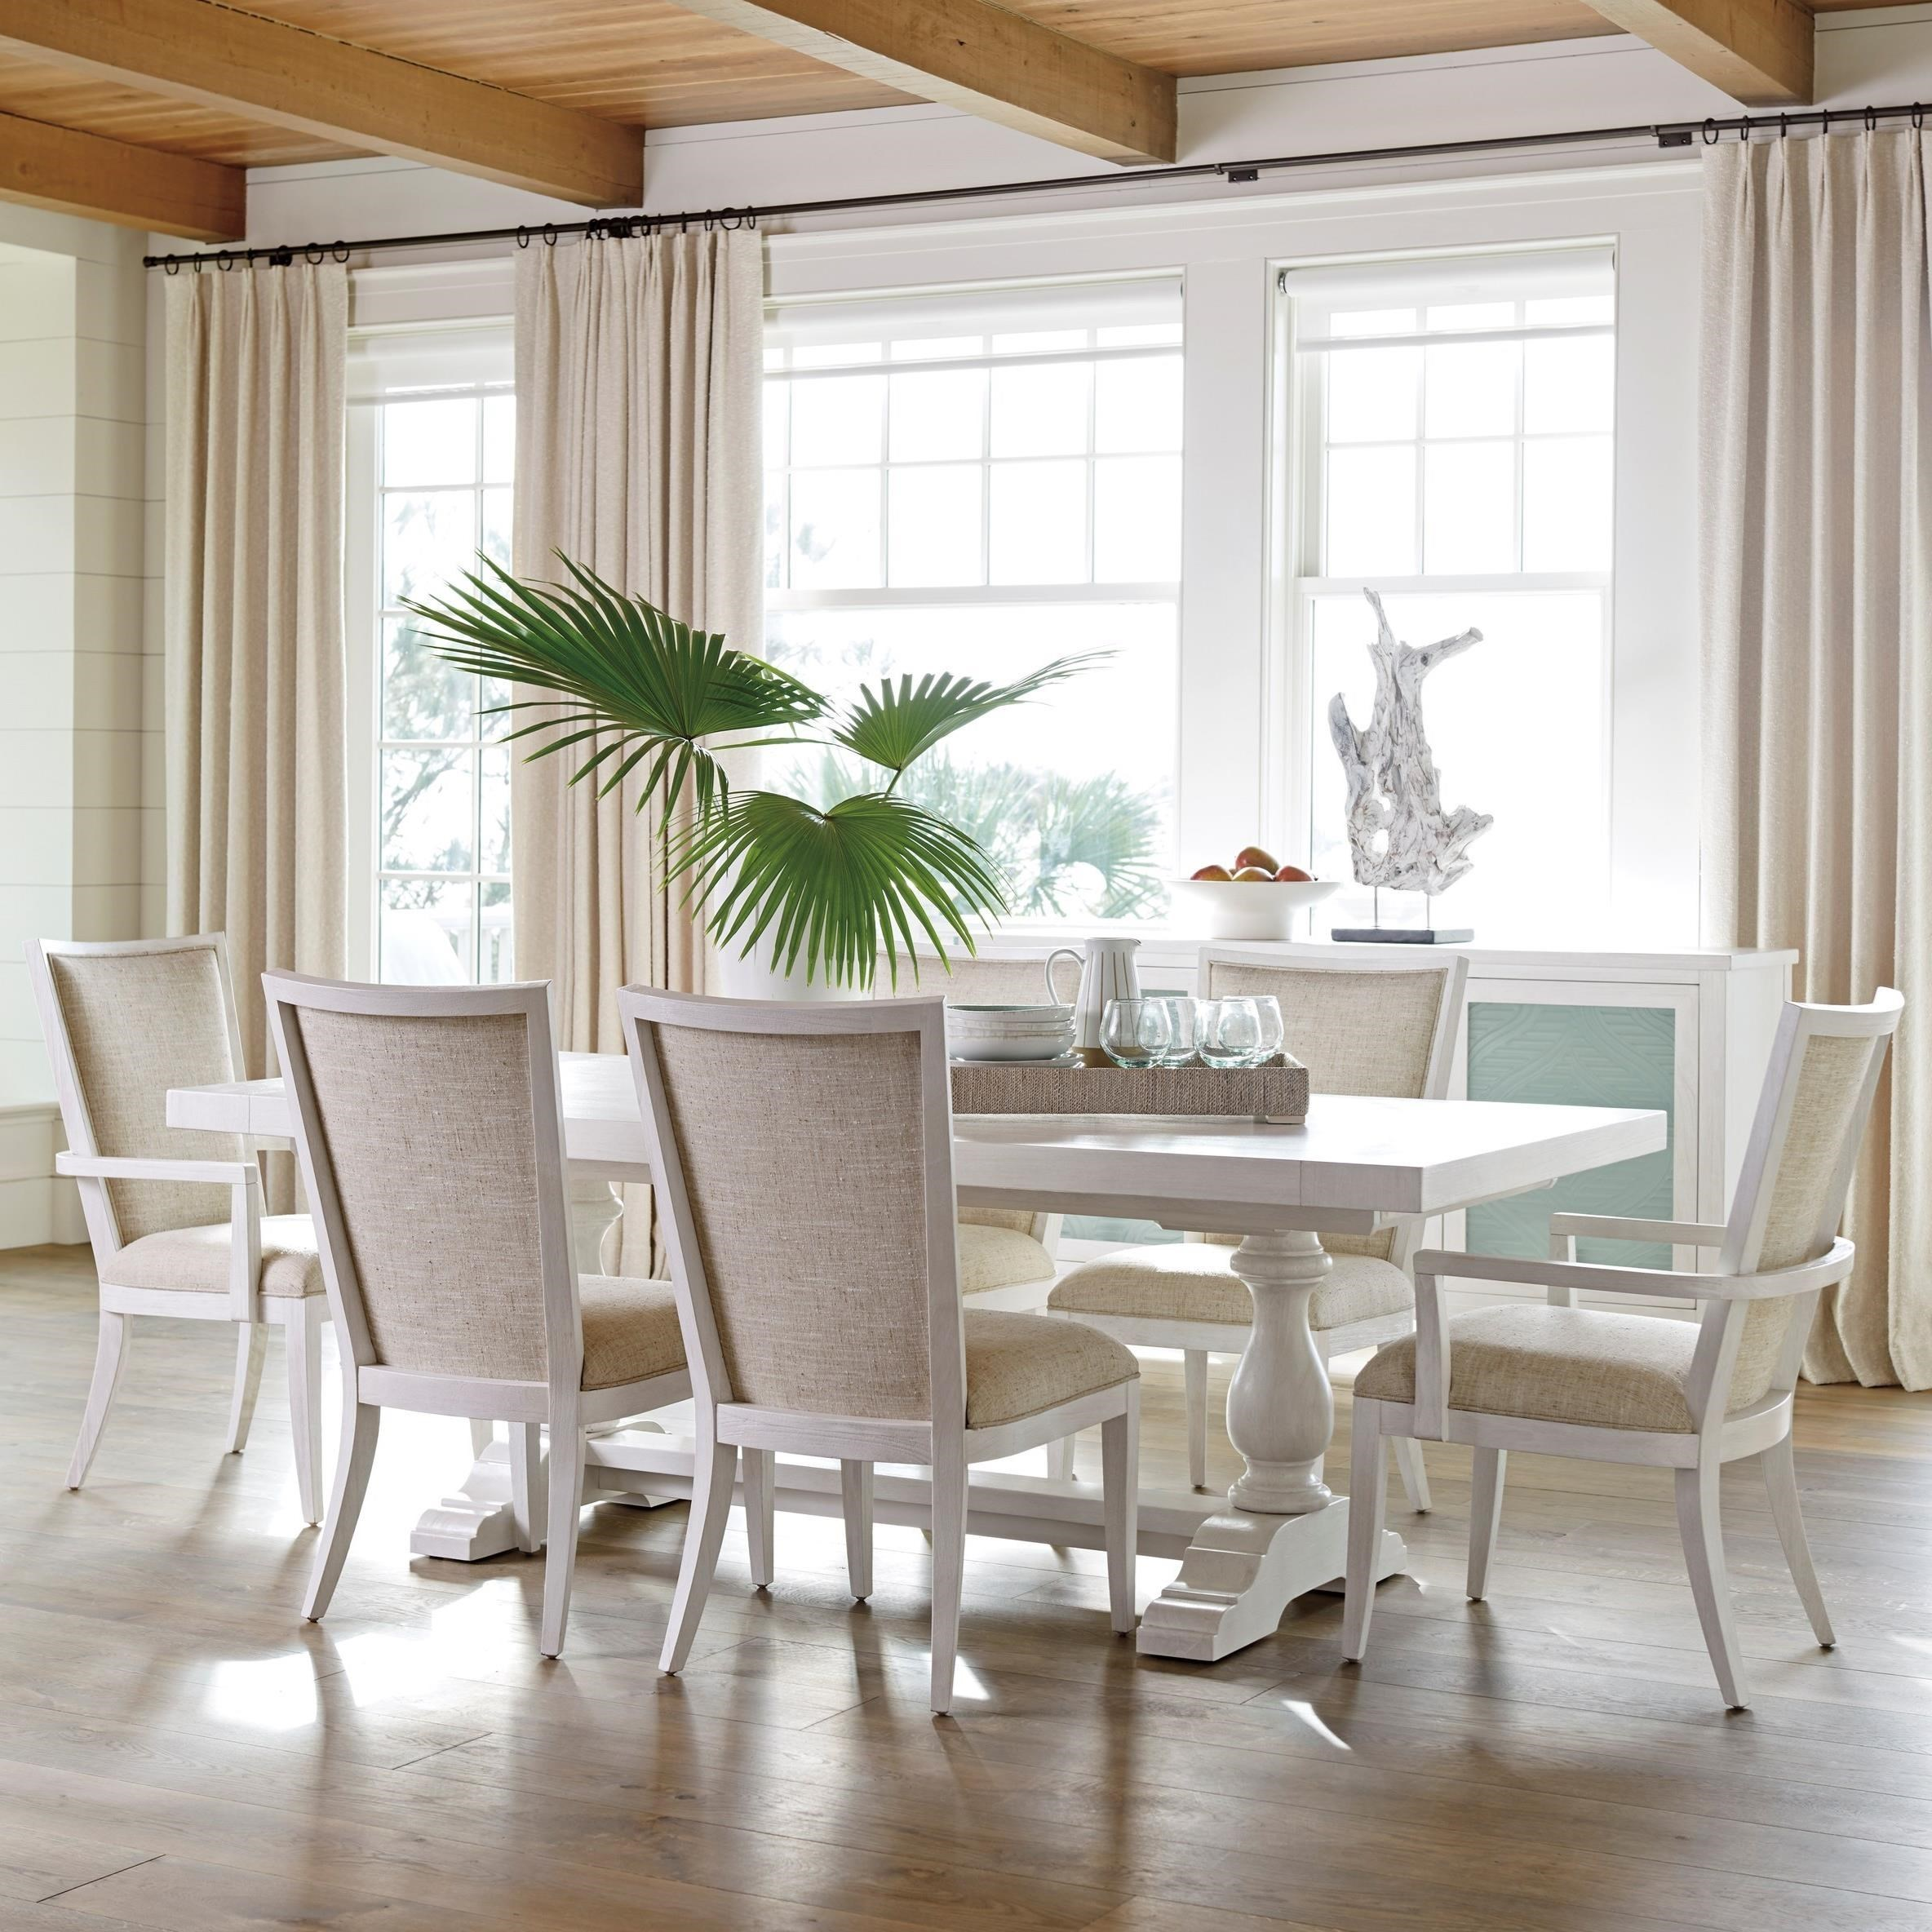 7-Piece Dining Set with Captiva Table and Sea Winds Chairs